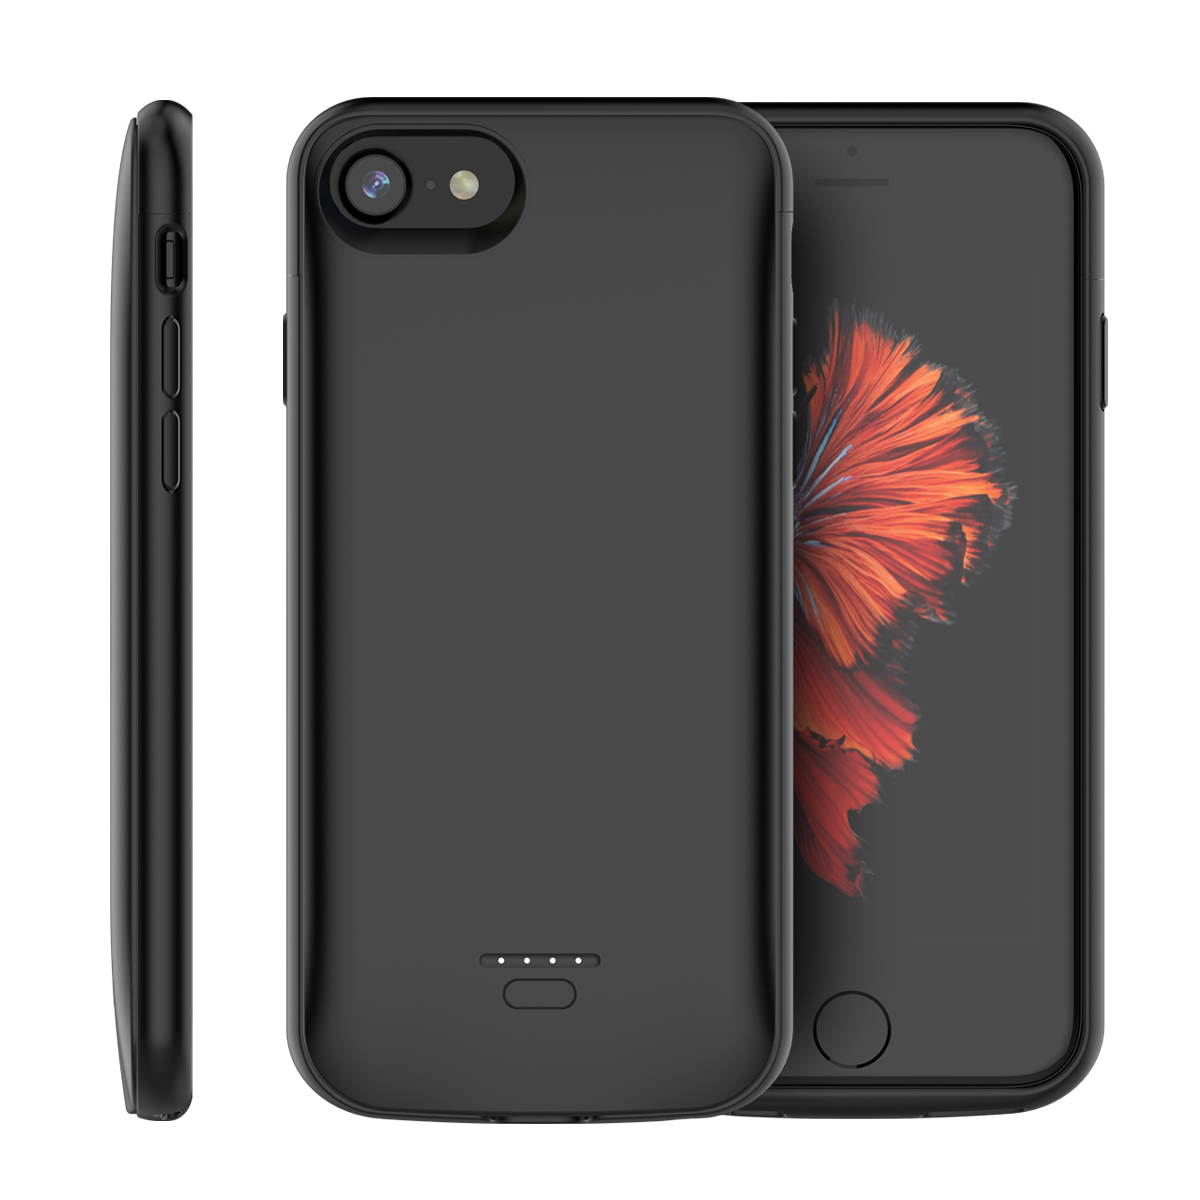 Konesky For iPhone 6 iPhone 6s 4.7 inch iPhone 7 iPhone 8 Battery Charger Case 4000mAh External Backup Charger Power Bank Protective Cover Black